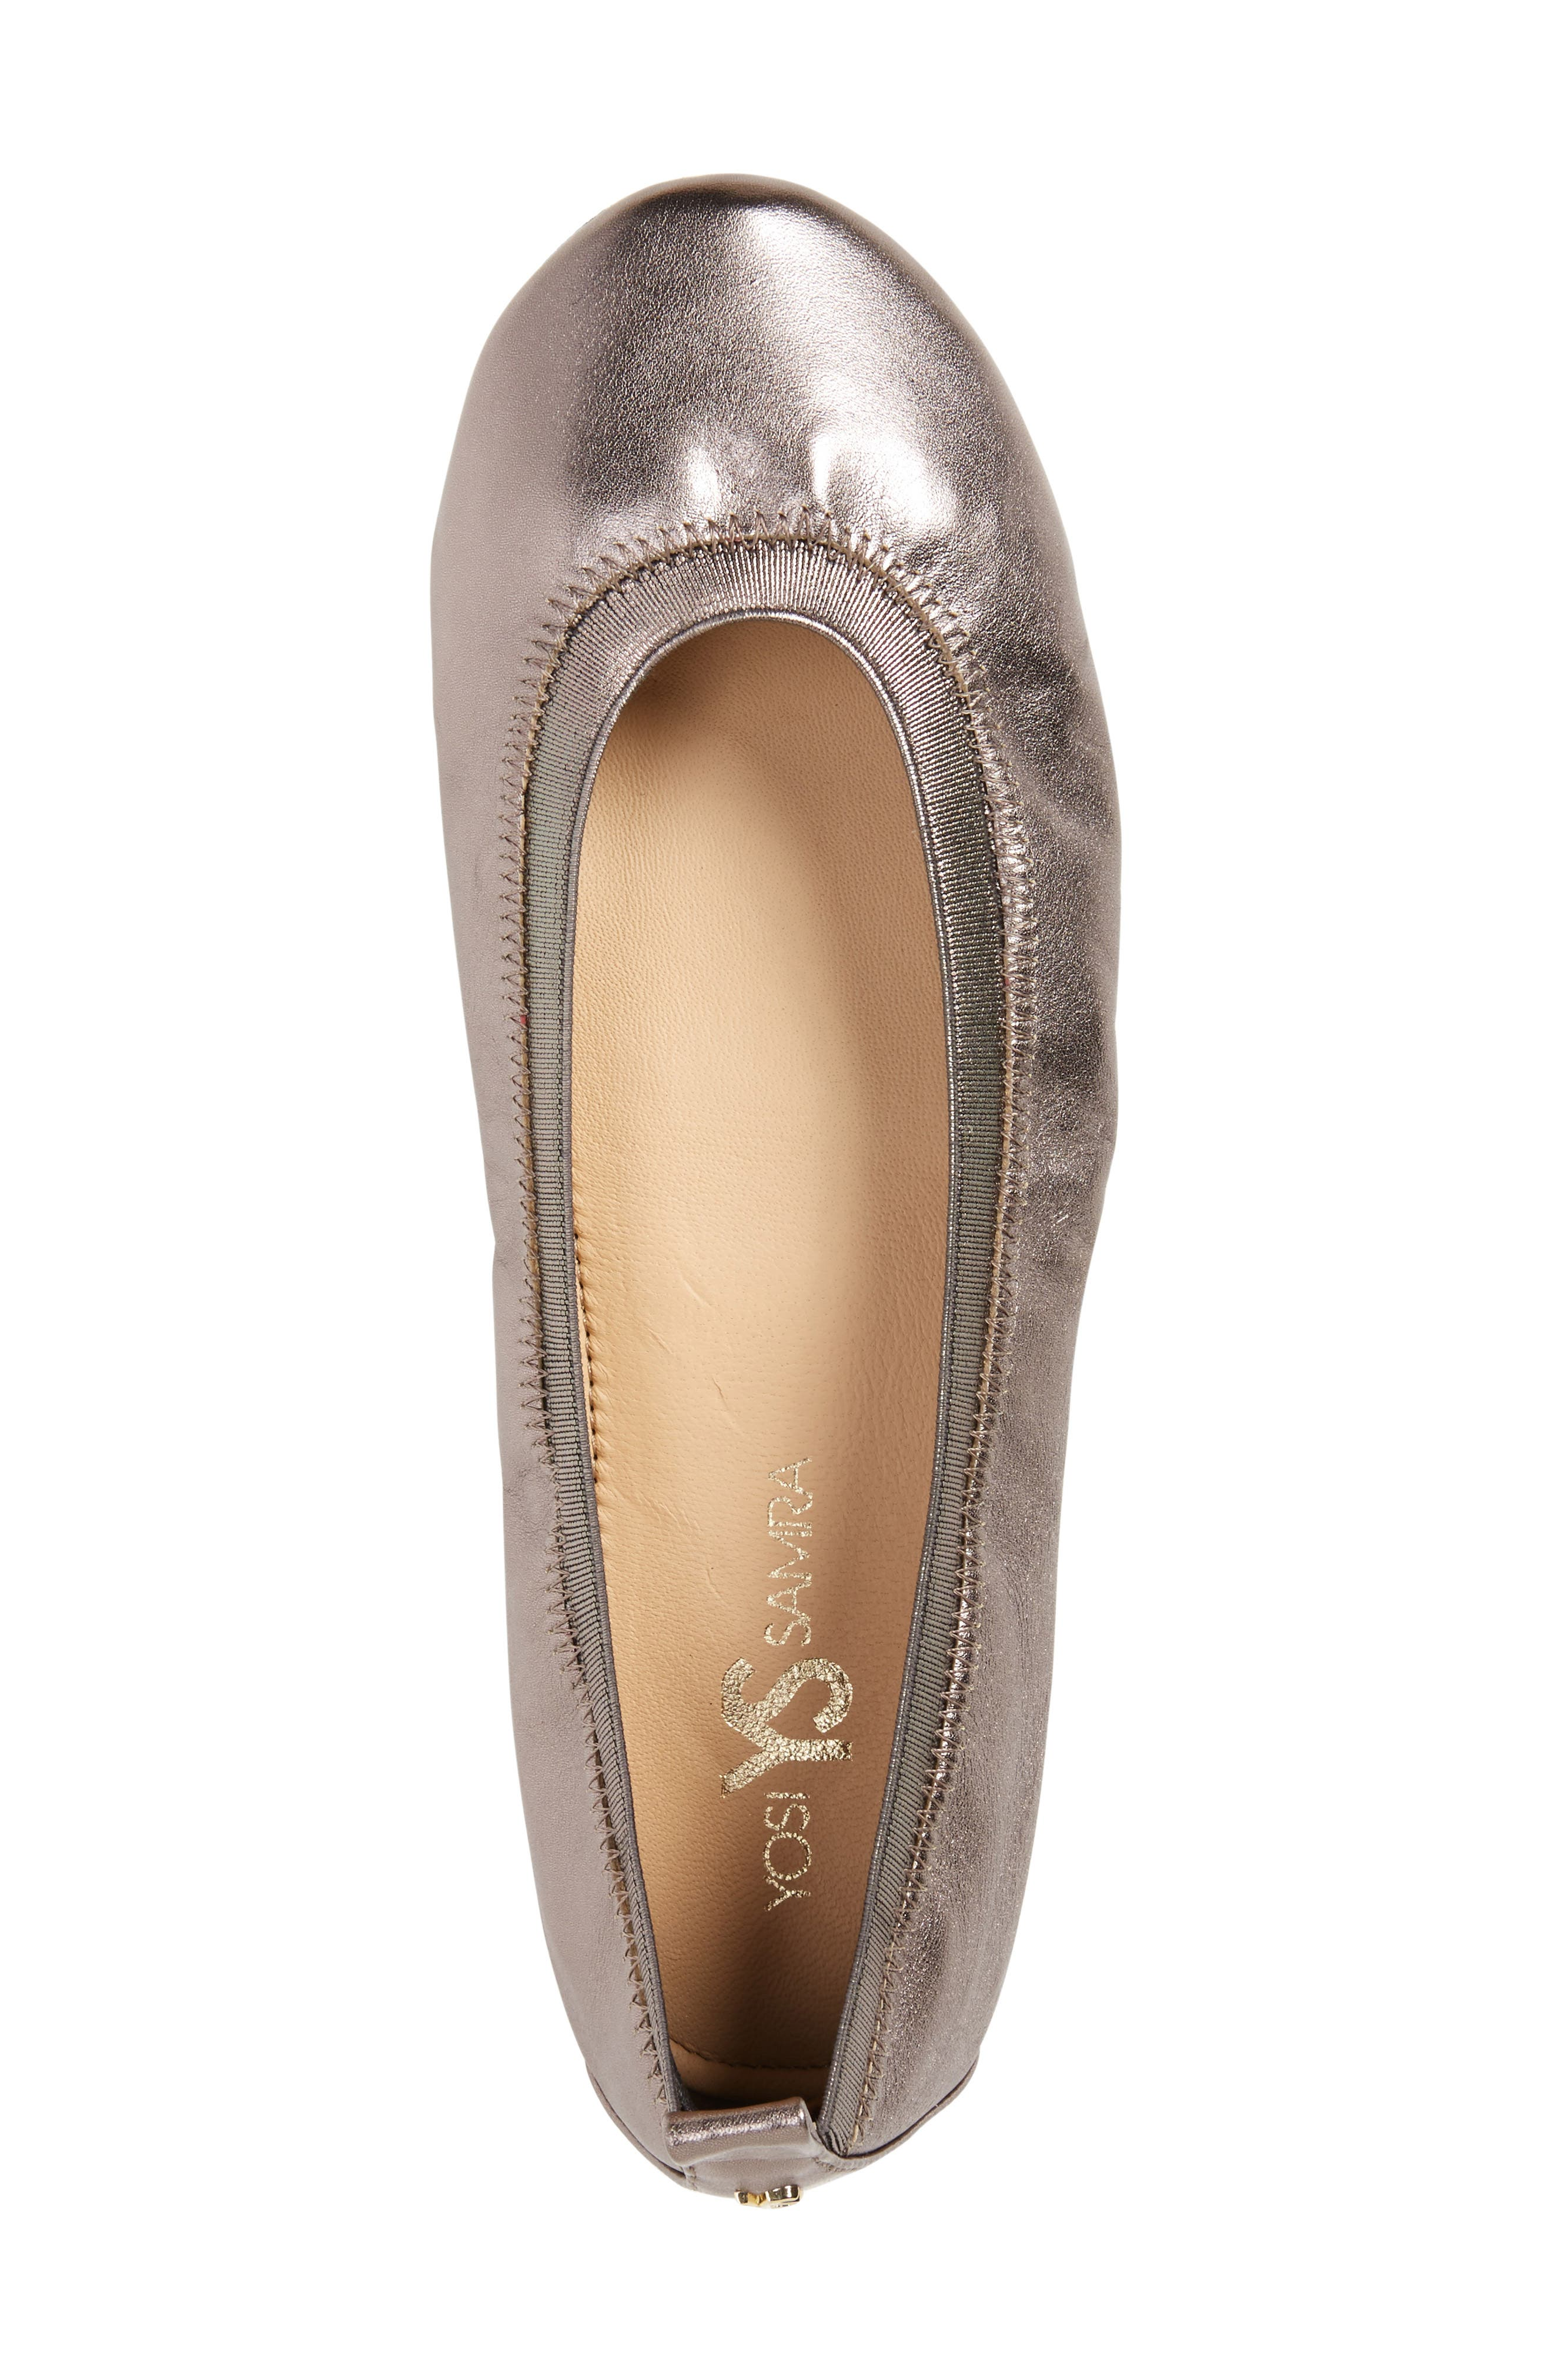 Samara 2.0 Foldable Ballet Flat,                             Alternate thumbnail 3, color,                             PEWTER LEATHER